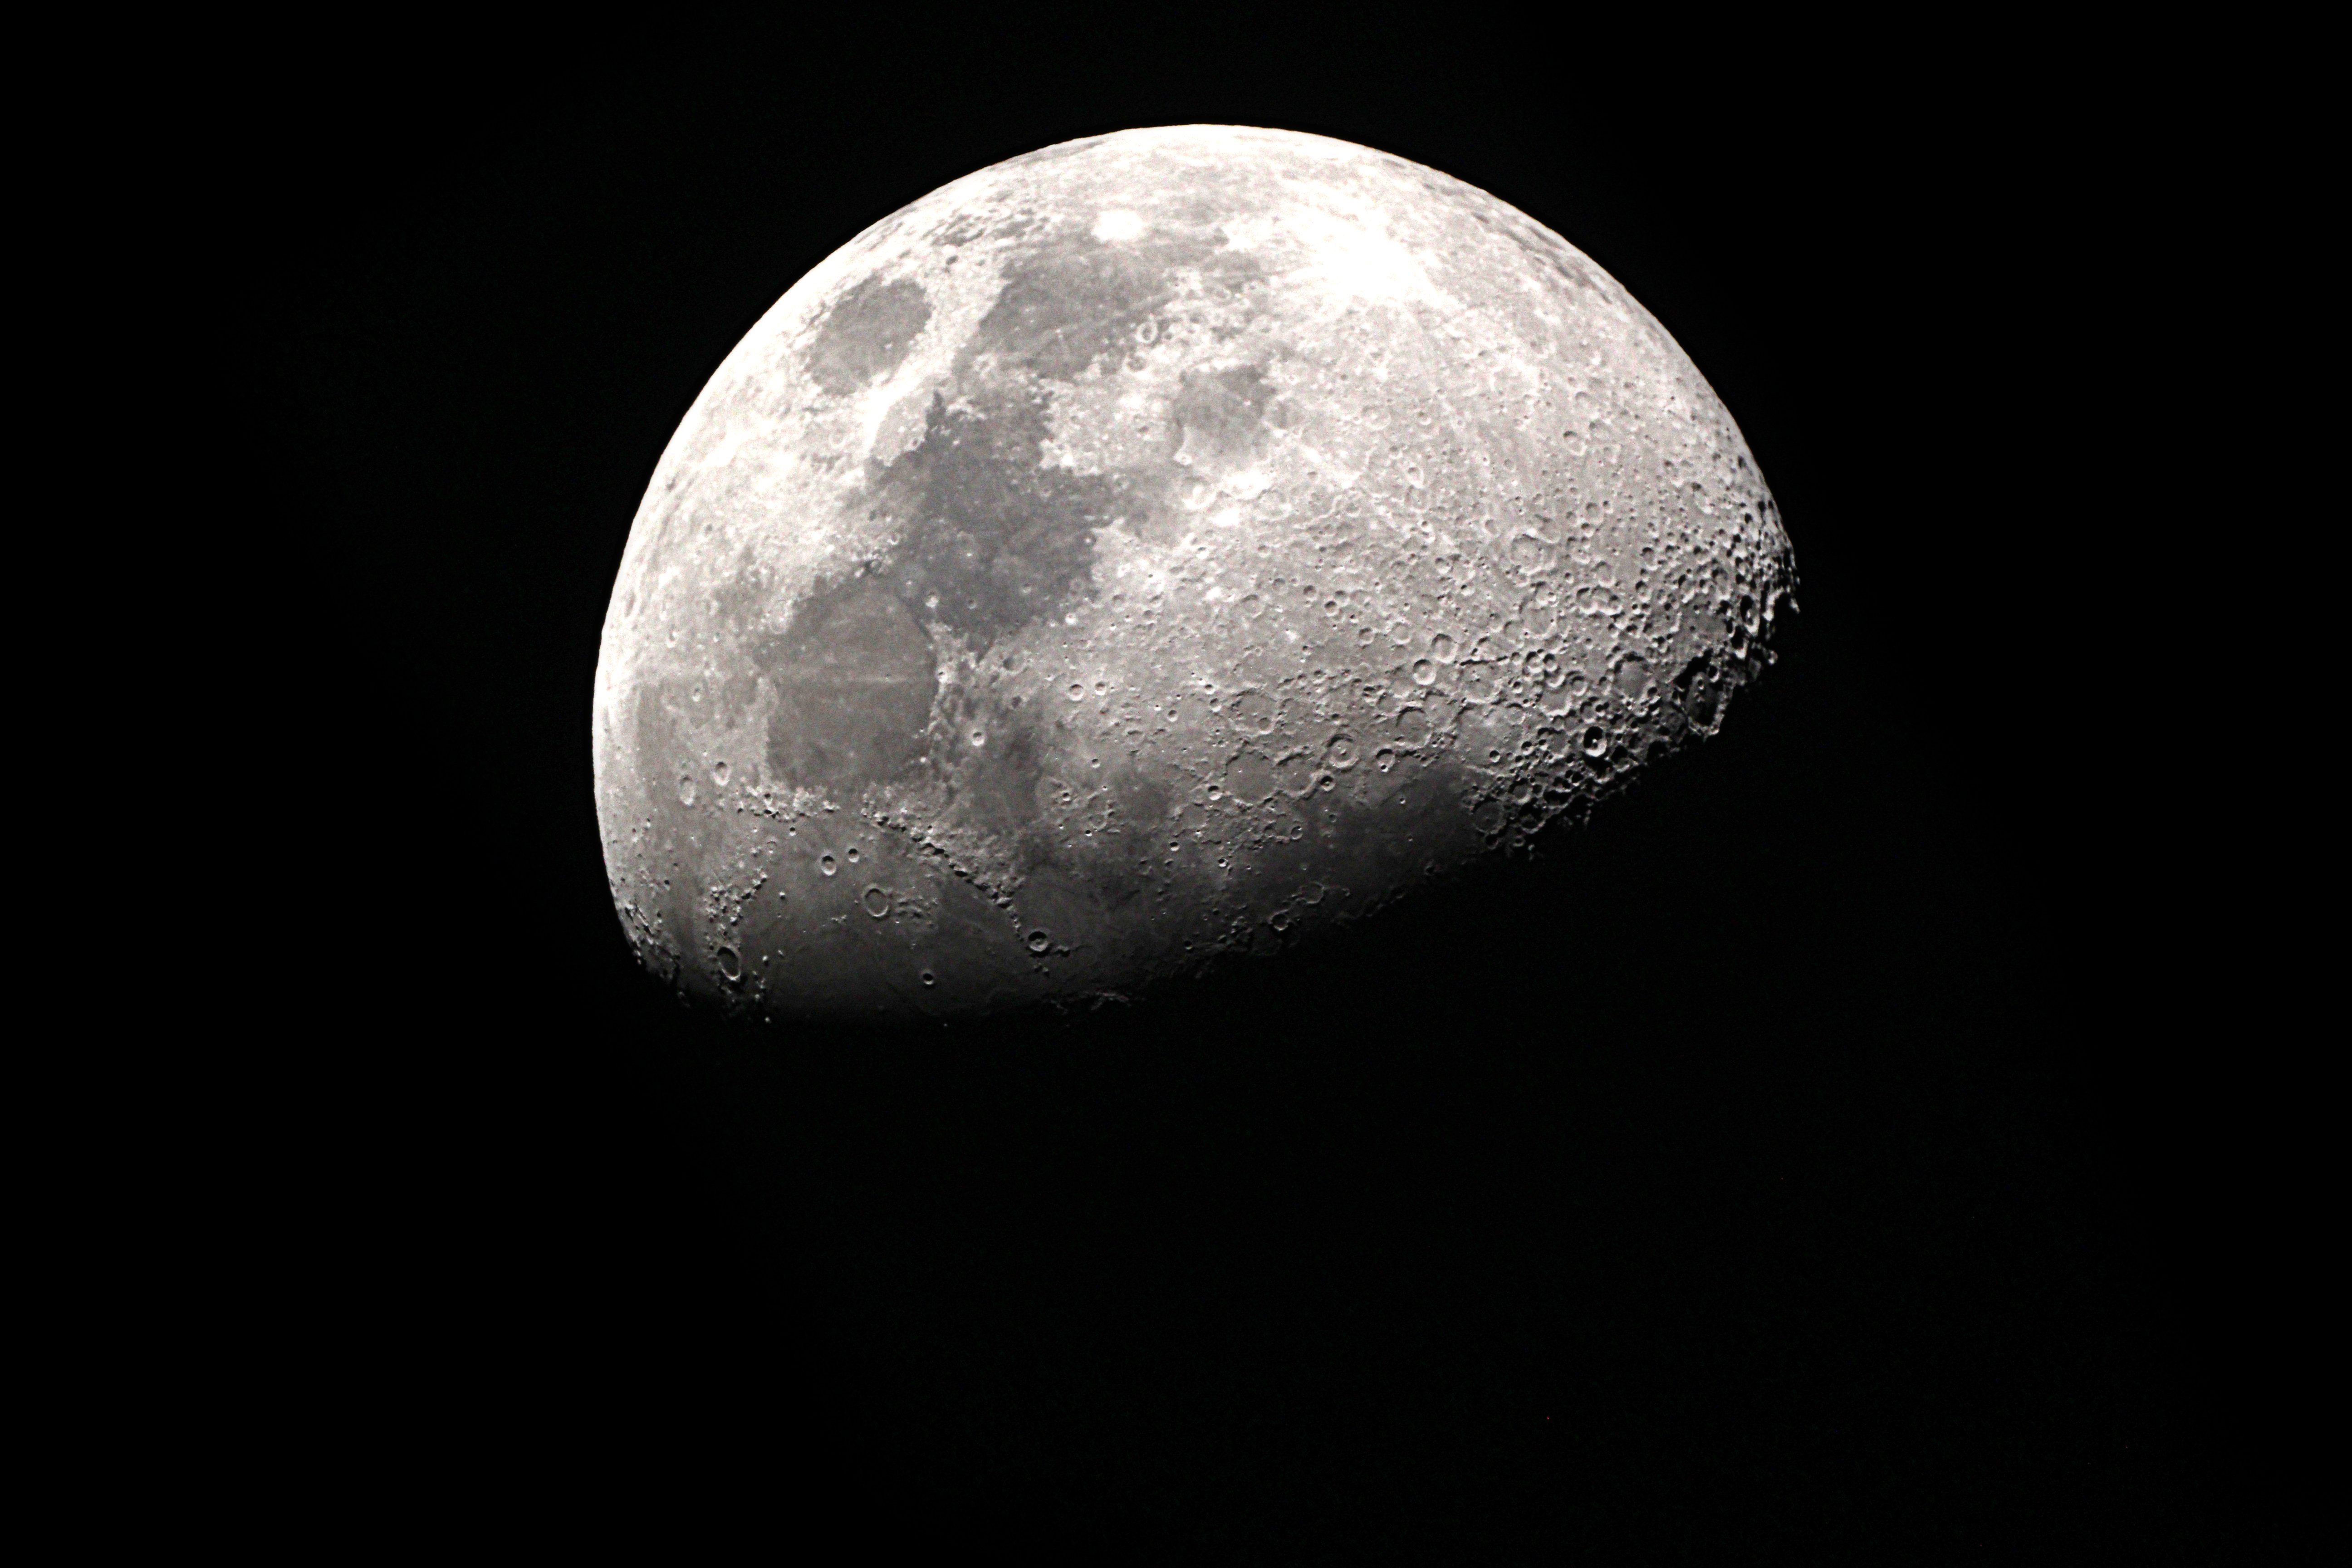 A photograph of the moon in space | Source: Shutterstock